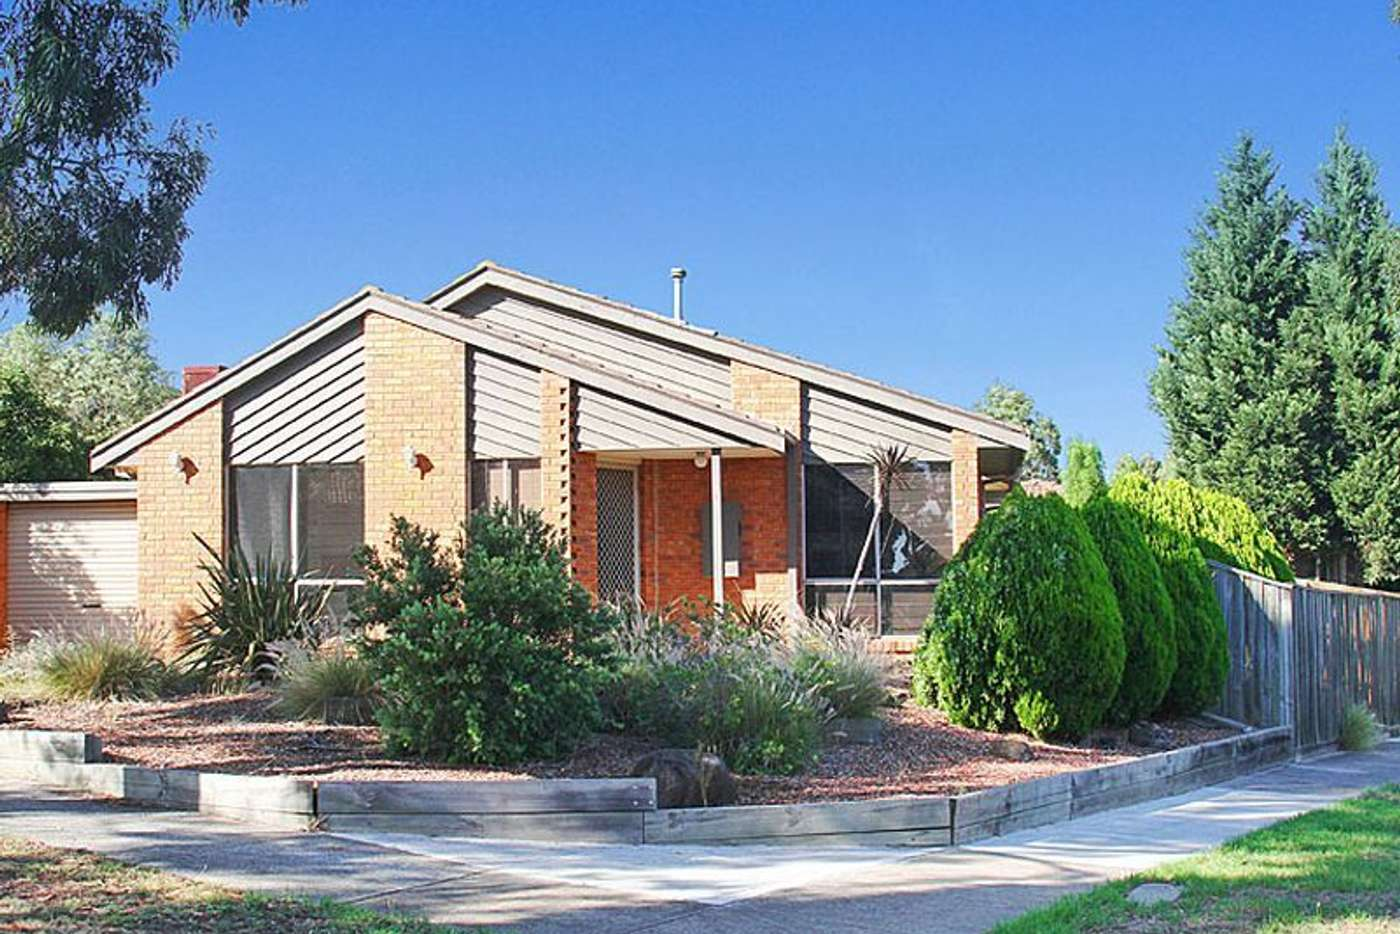 Main view of Homely house listing, 6 Small Court, Mill Park VIC 3082